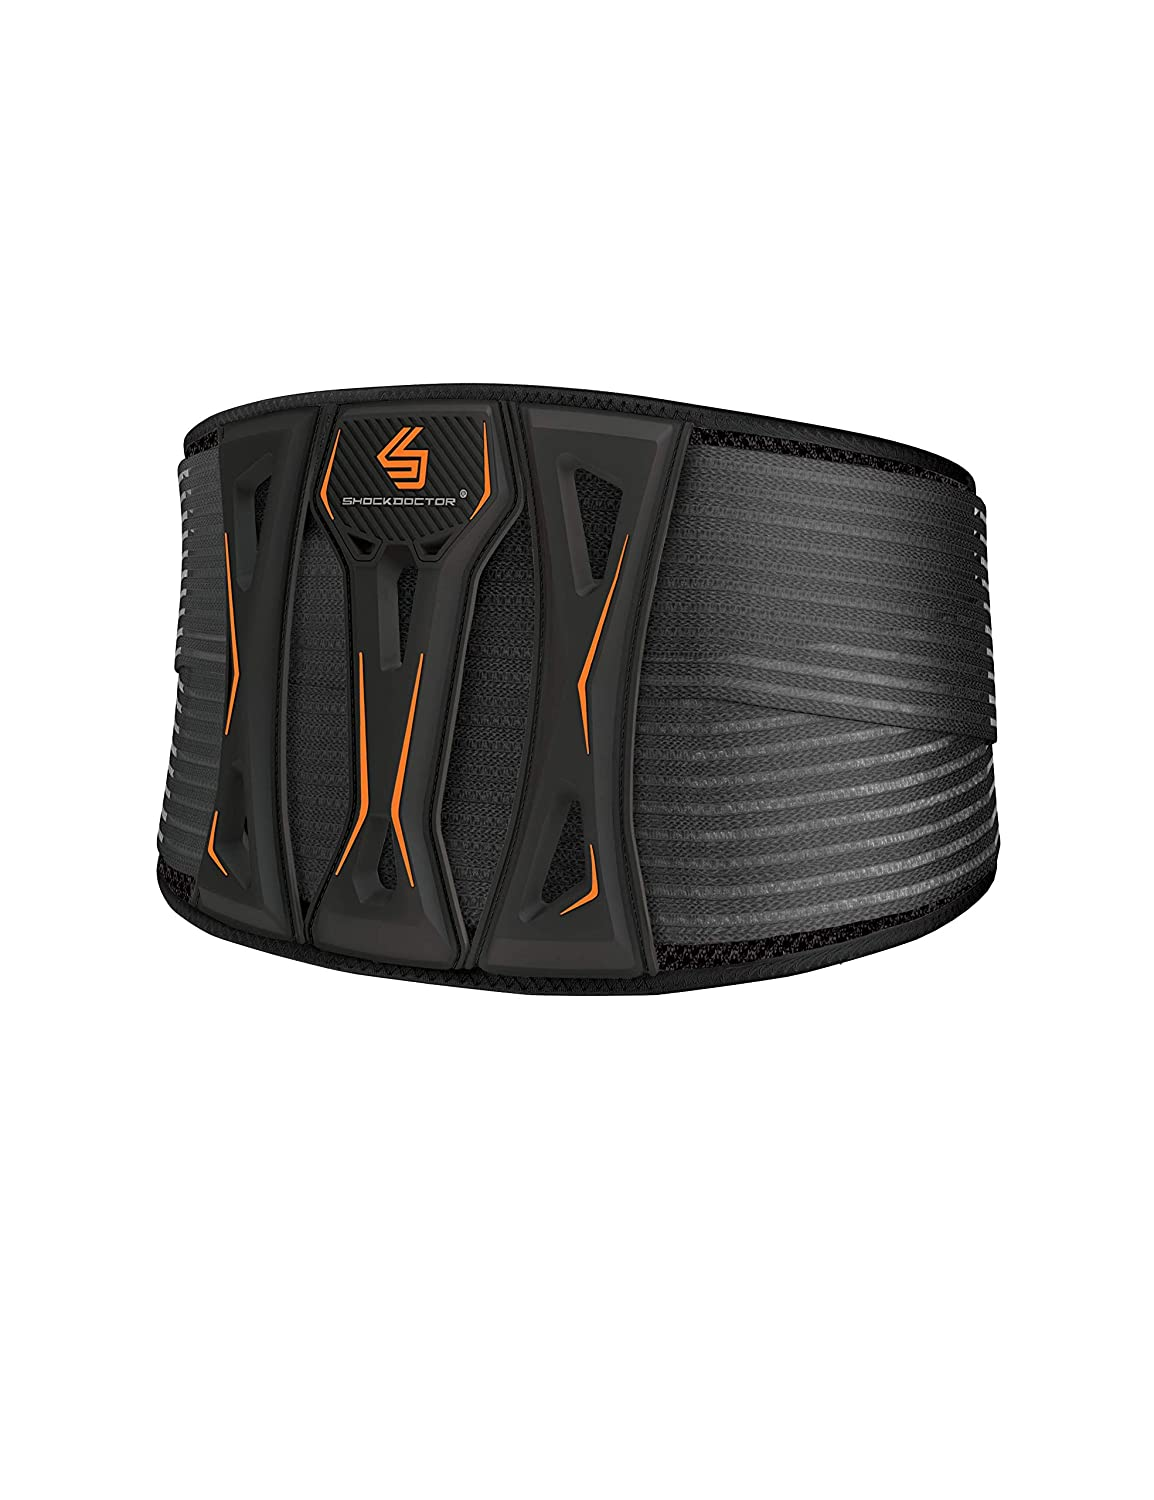 4c9e2c0038 Amazon.com: Shock Doctor 838 Ultra Back Support: Sports & Outdoors